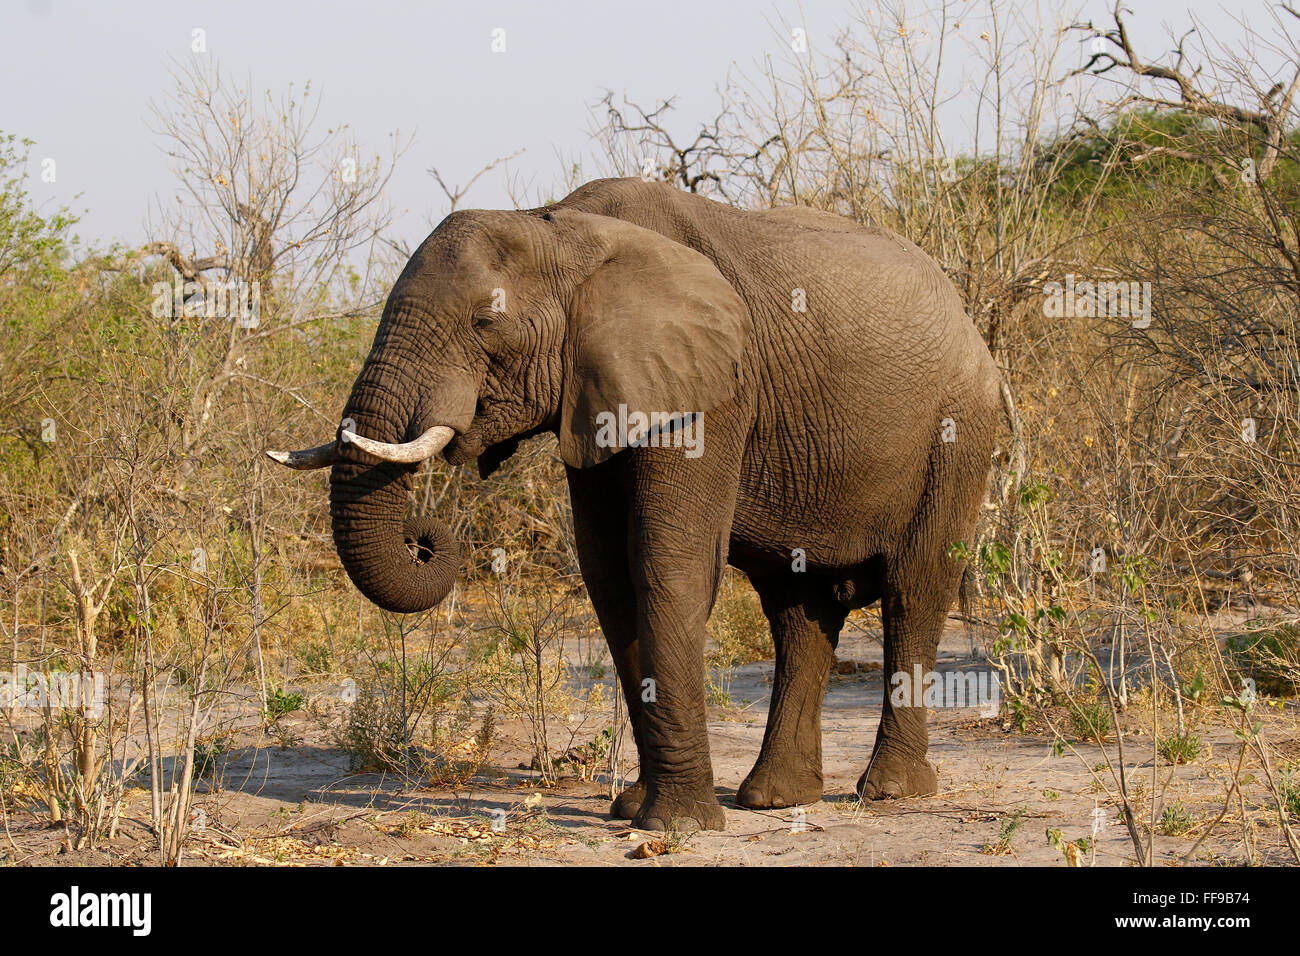 Both Male And Female African Elephants Have Tusks Tusks Grow For